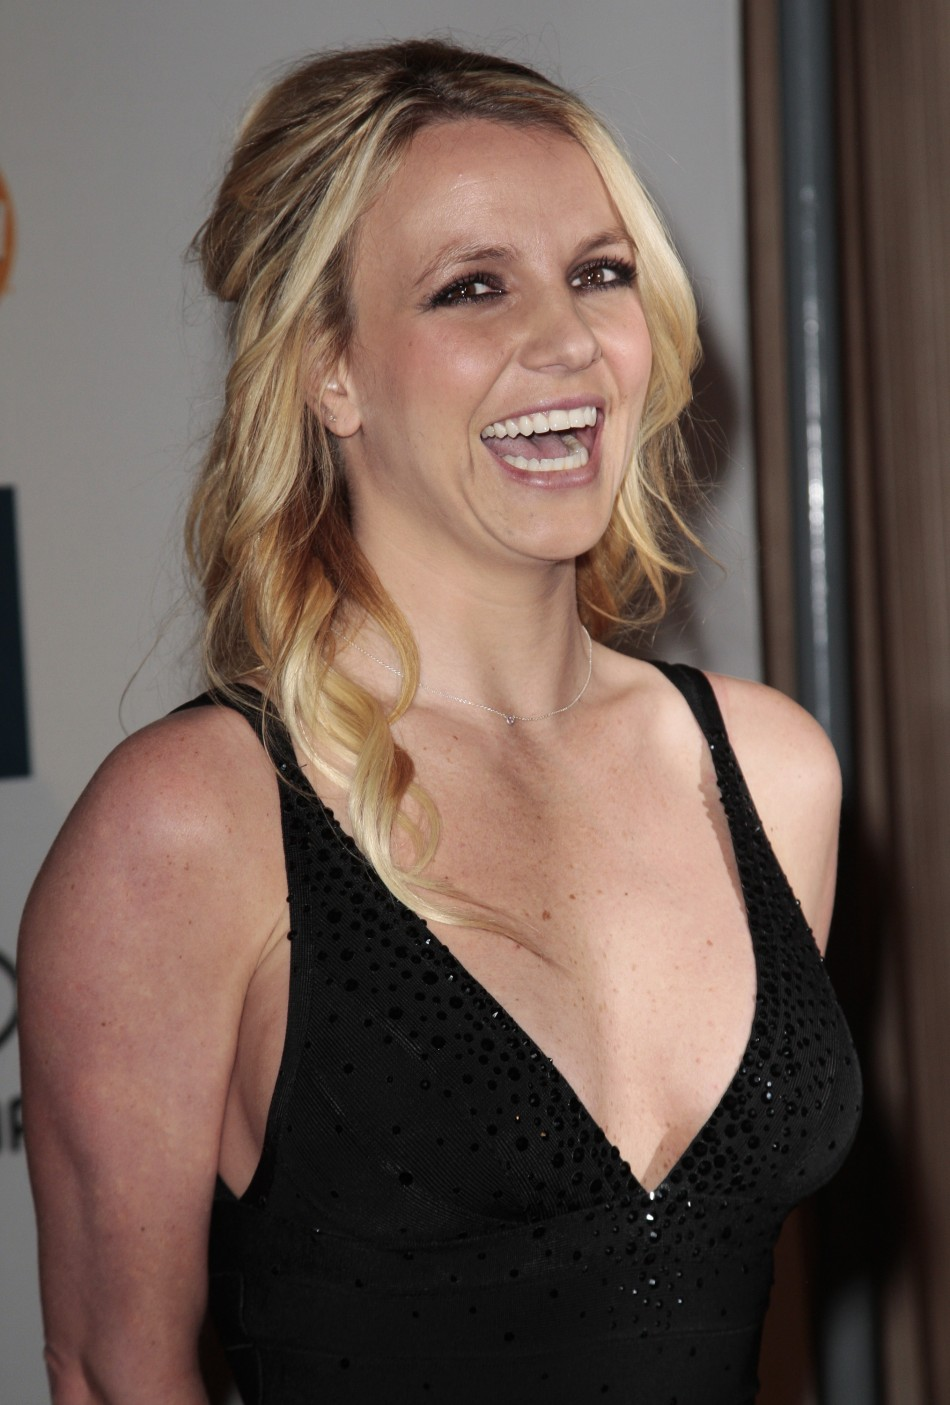 pics of britney spears breasts